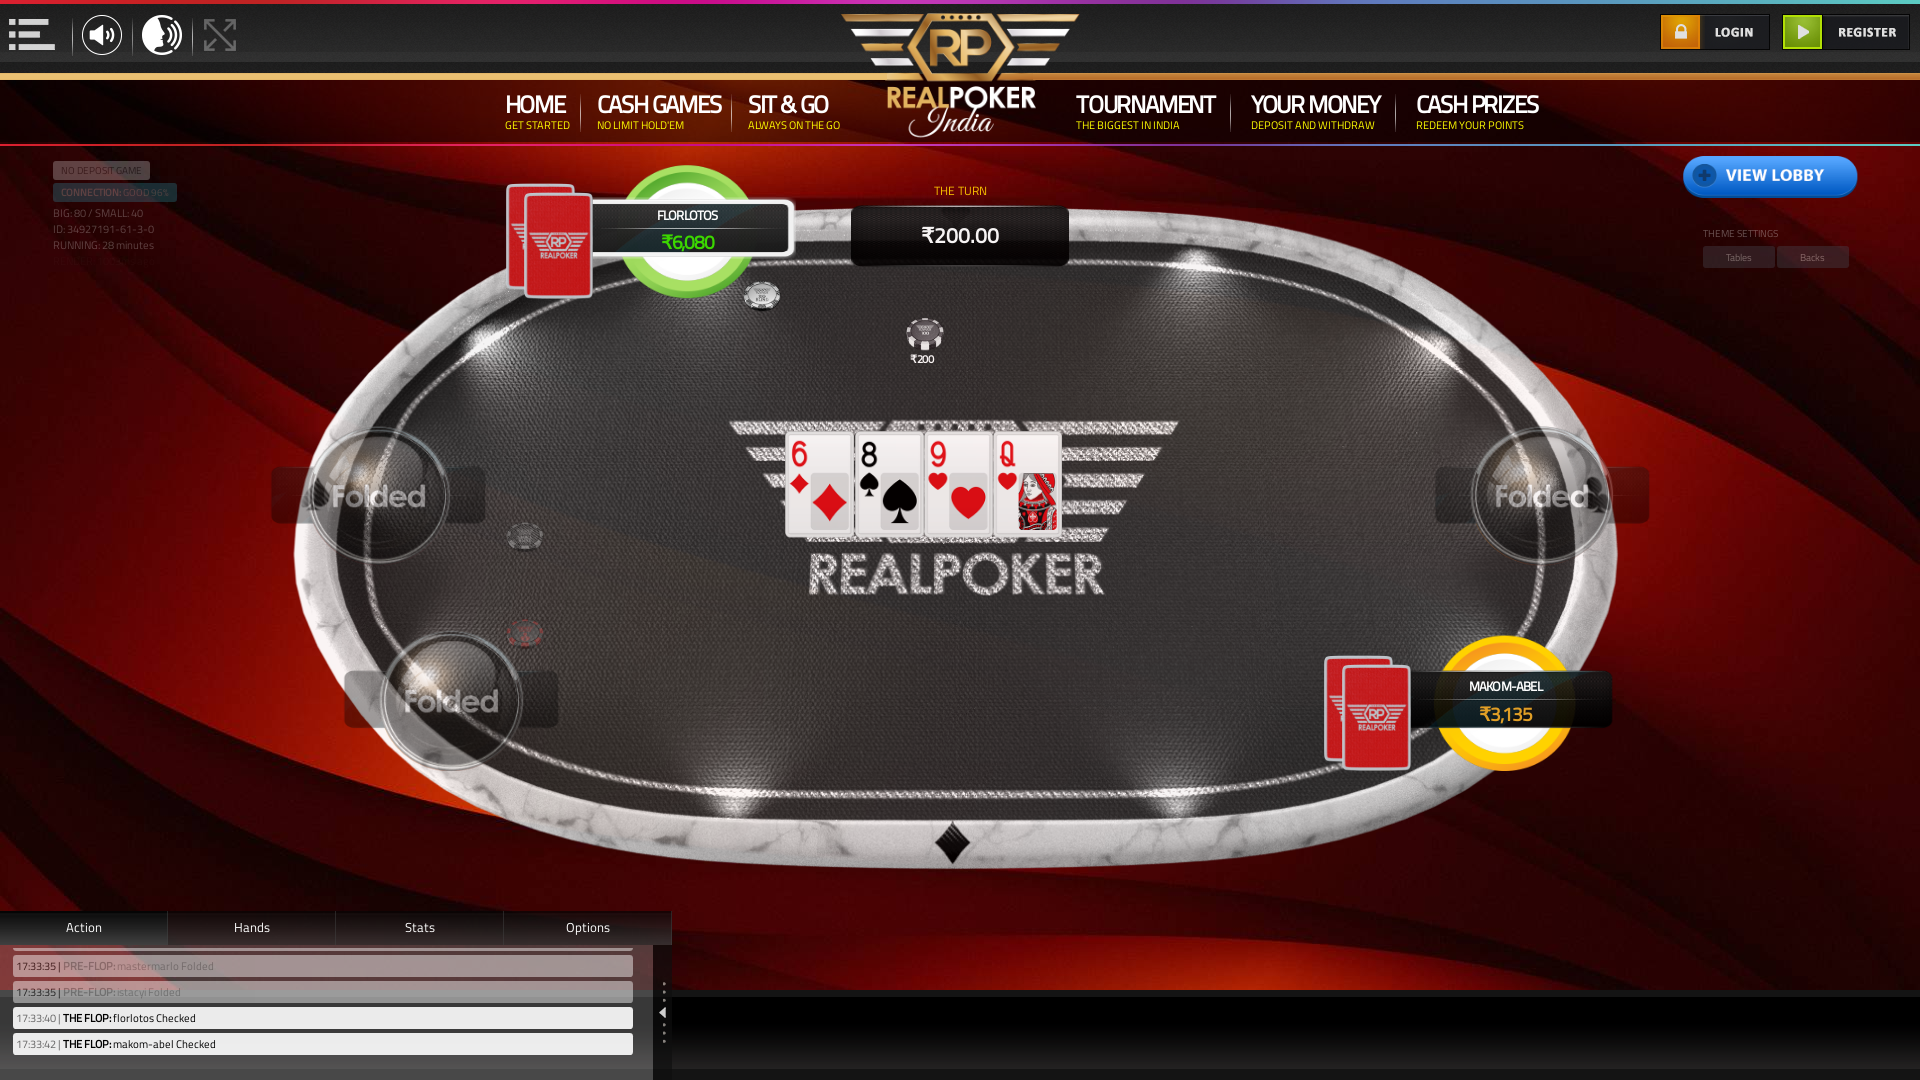 Lower Parel, Mumbai online poker game on a 10 player table in the 28th minute